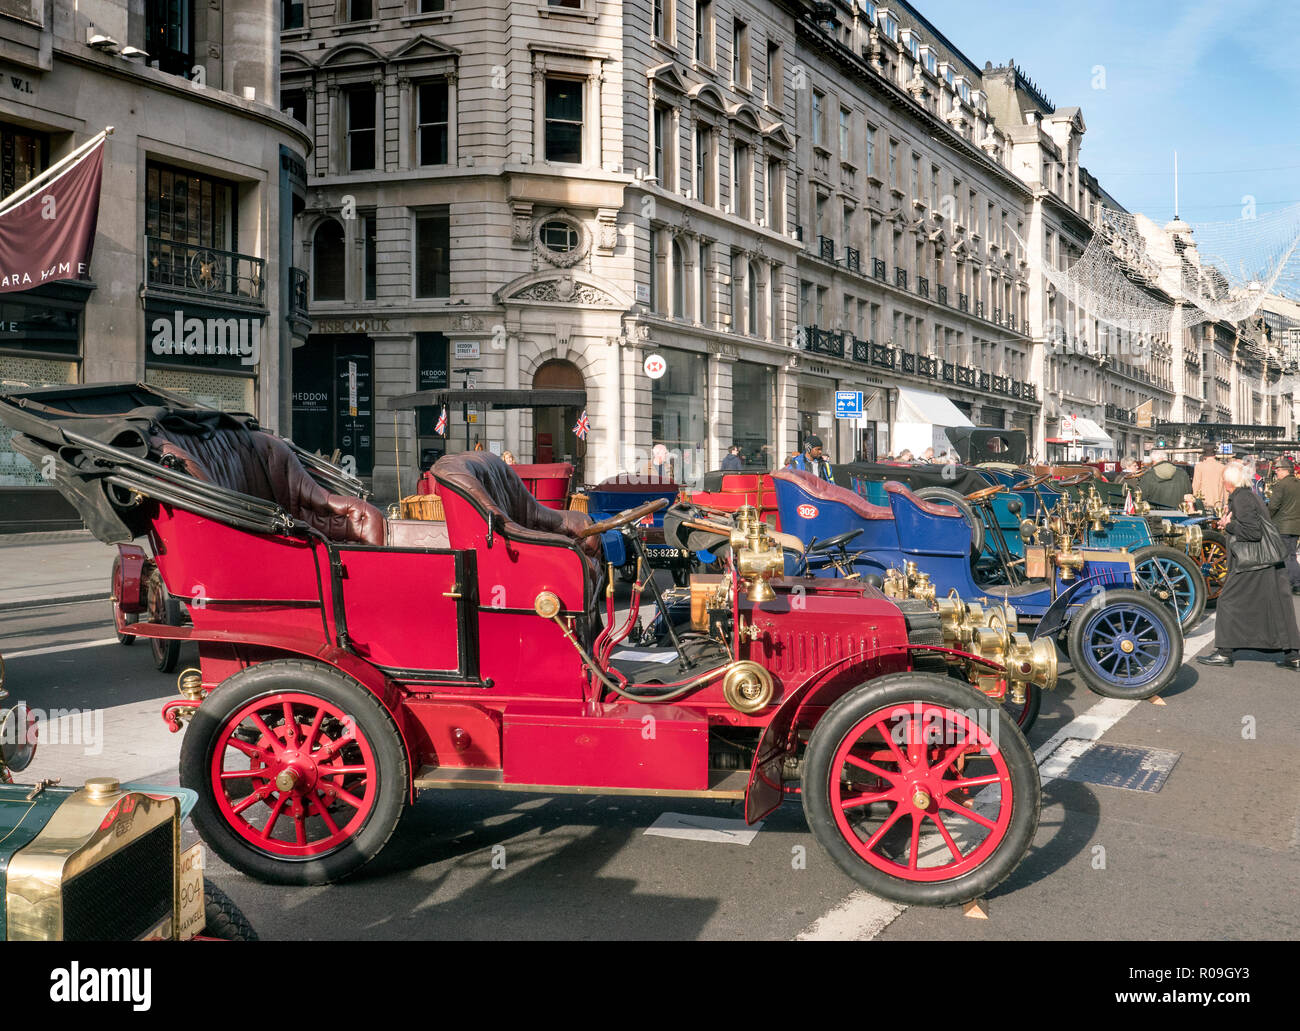 London, UK. 3 November 2018. Veteran Cars on display at the Regents Street Motor show London W1 03/11/2018 Credit: Martyn Goddard/Alamy Live News - Stock Image